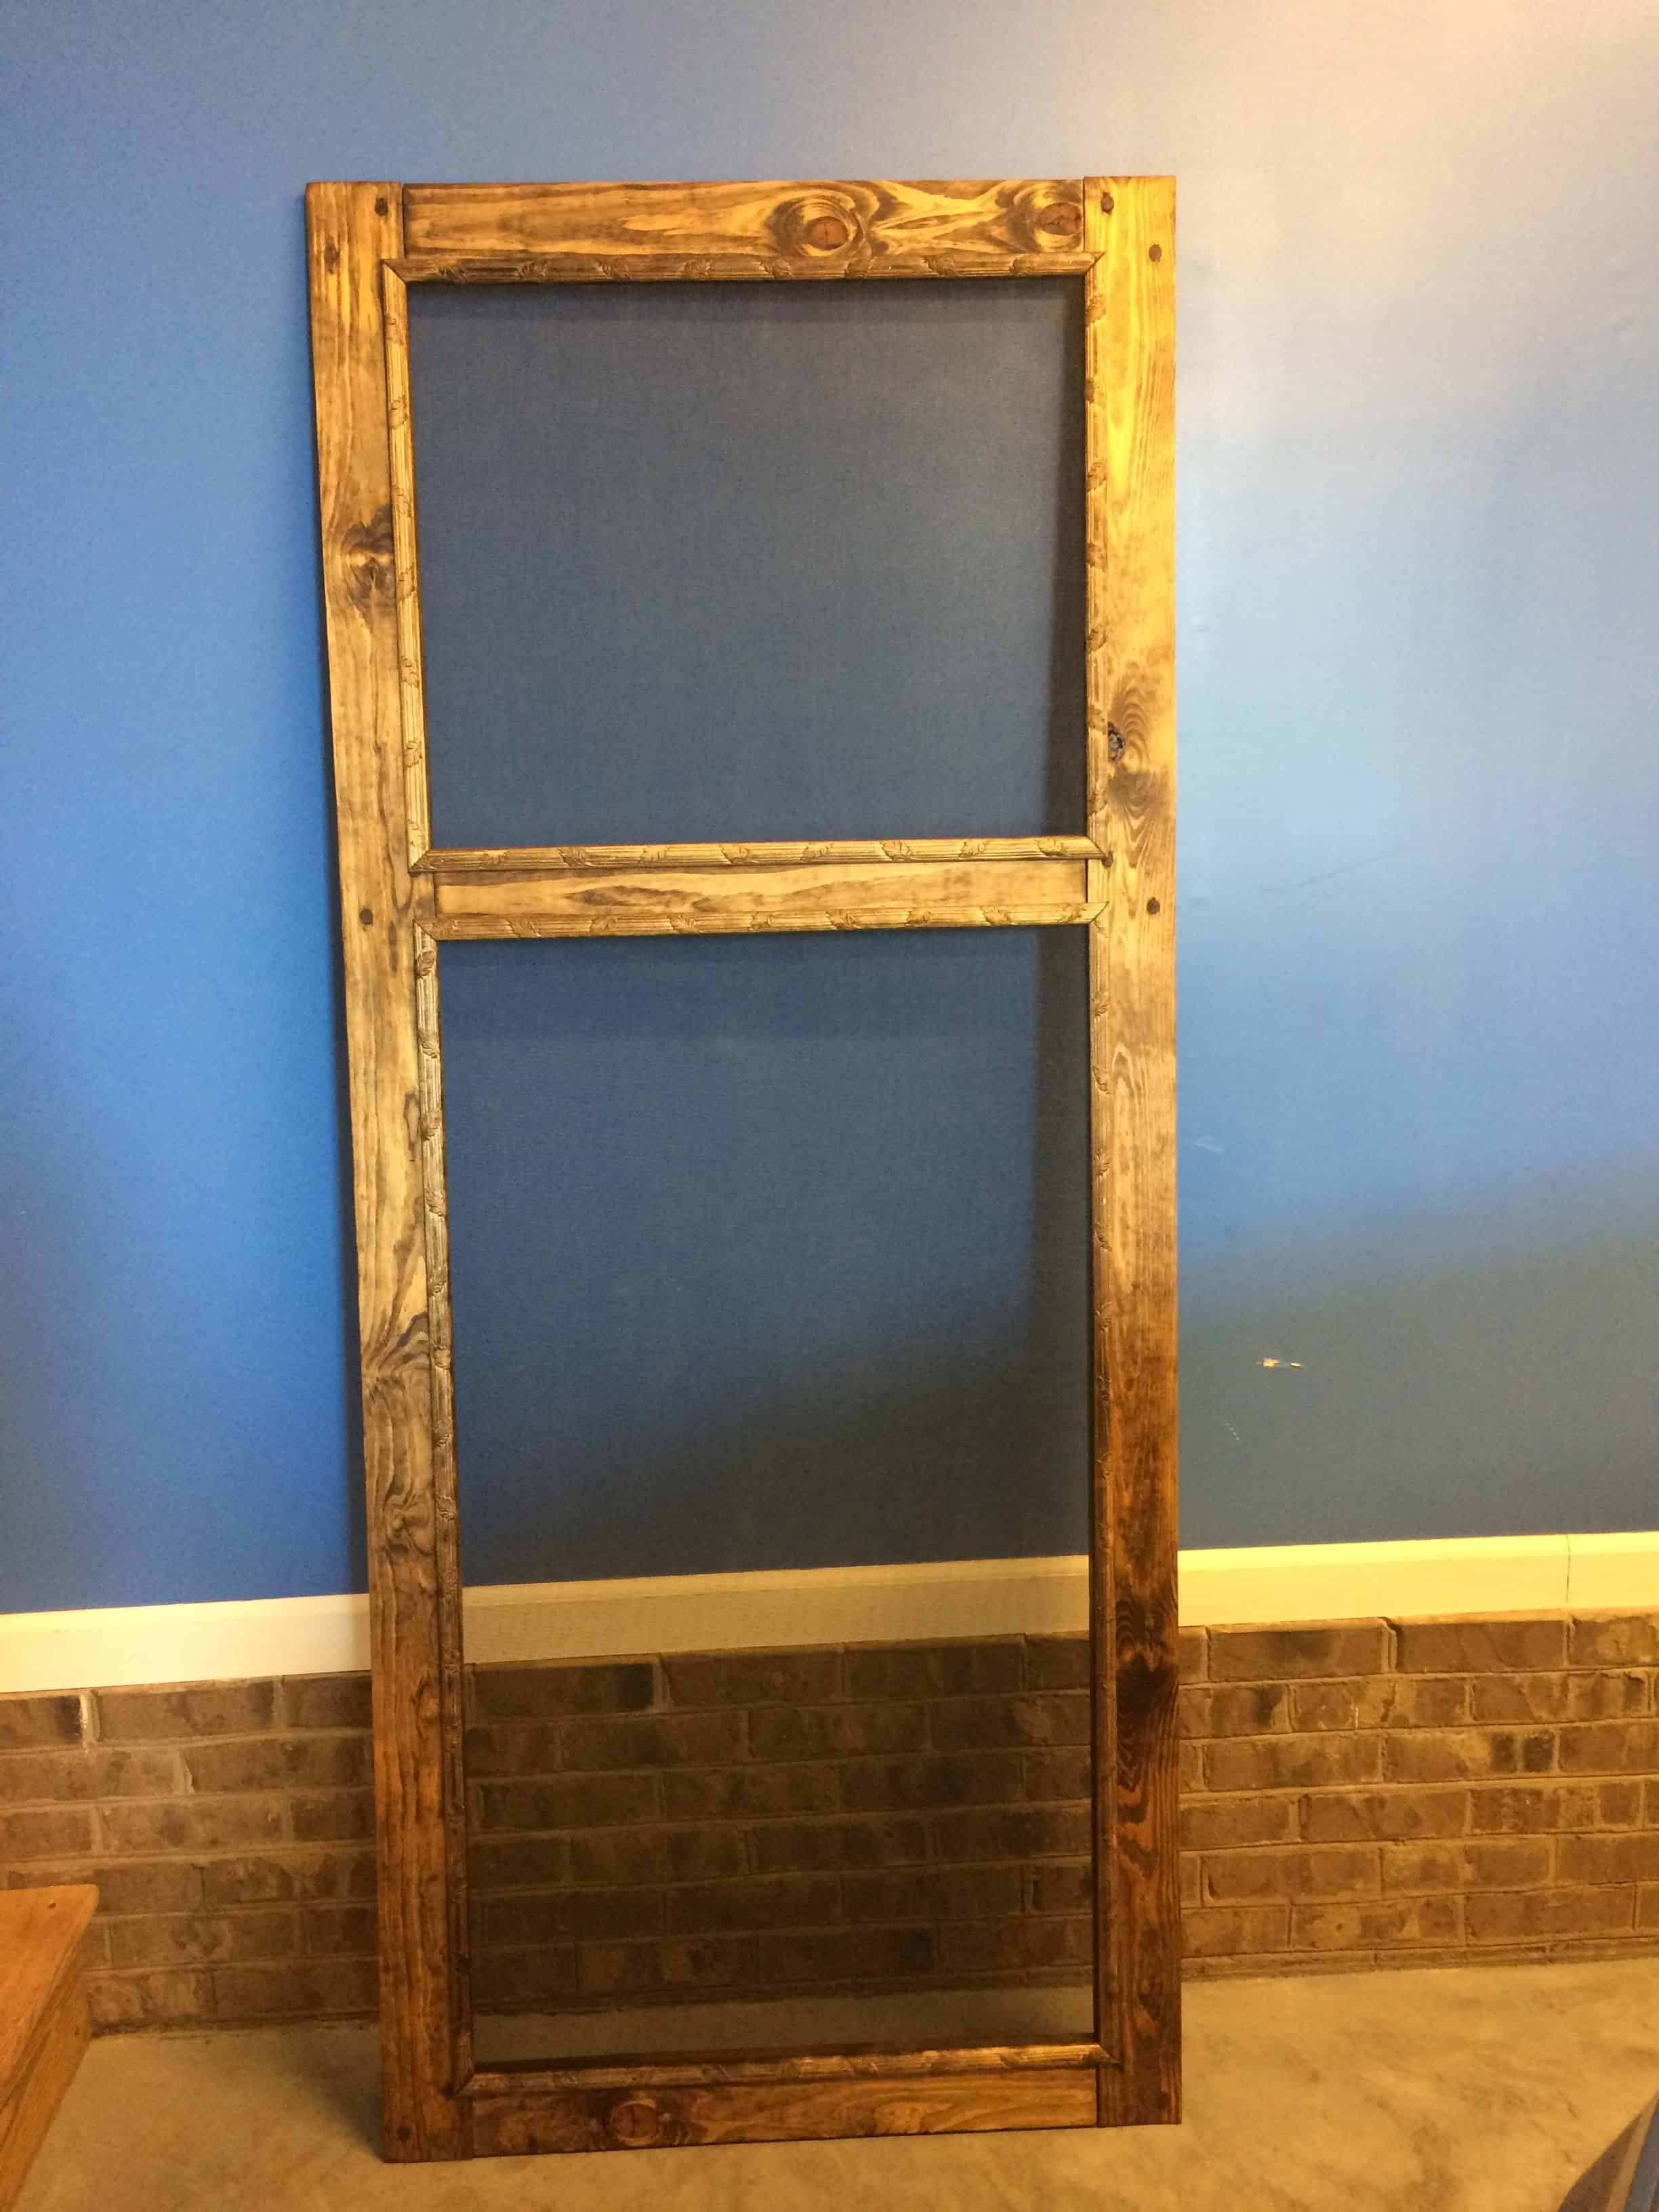 Marvelous photograph of Decorative trimmed DIY Pallet Screen Door • 1001 Pallets with #B58616 color and 2448x3264 pixels